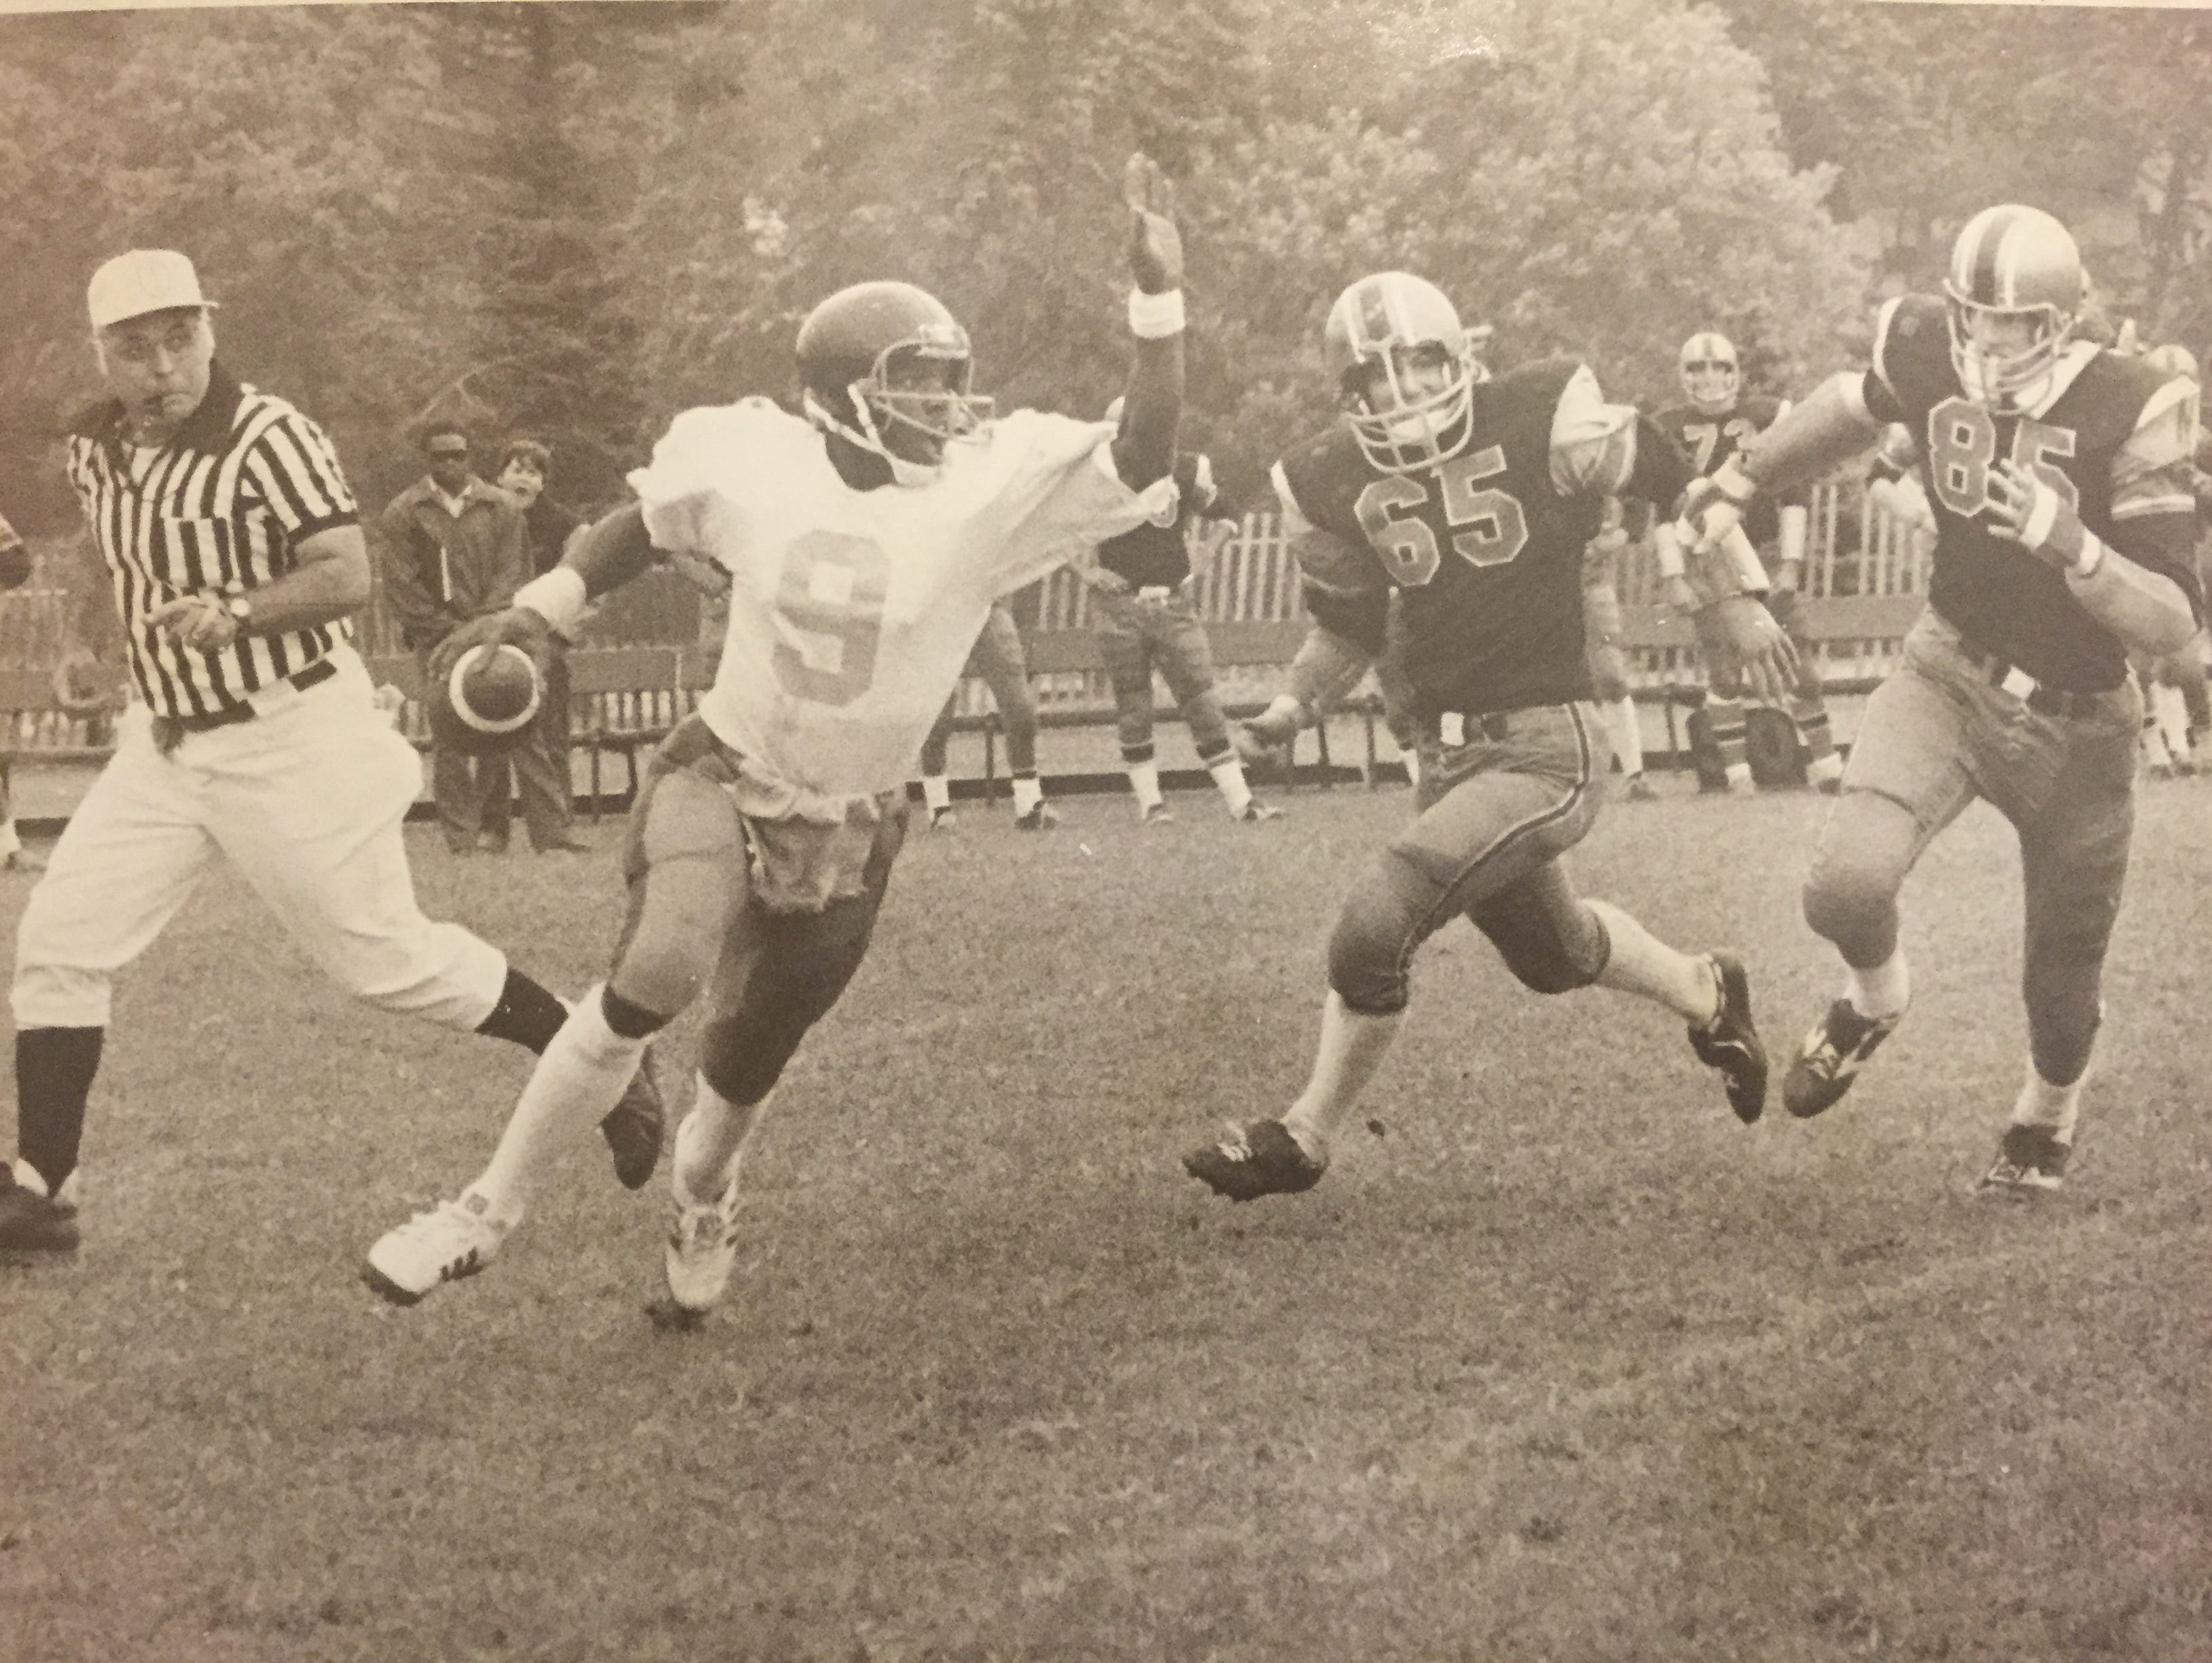 Asbury Park quarterback Timmy White (6) rolls out against Marlboro in a 1977 game.